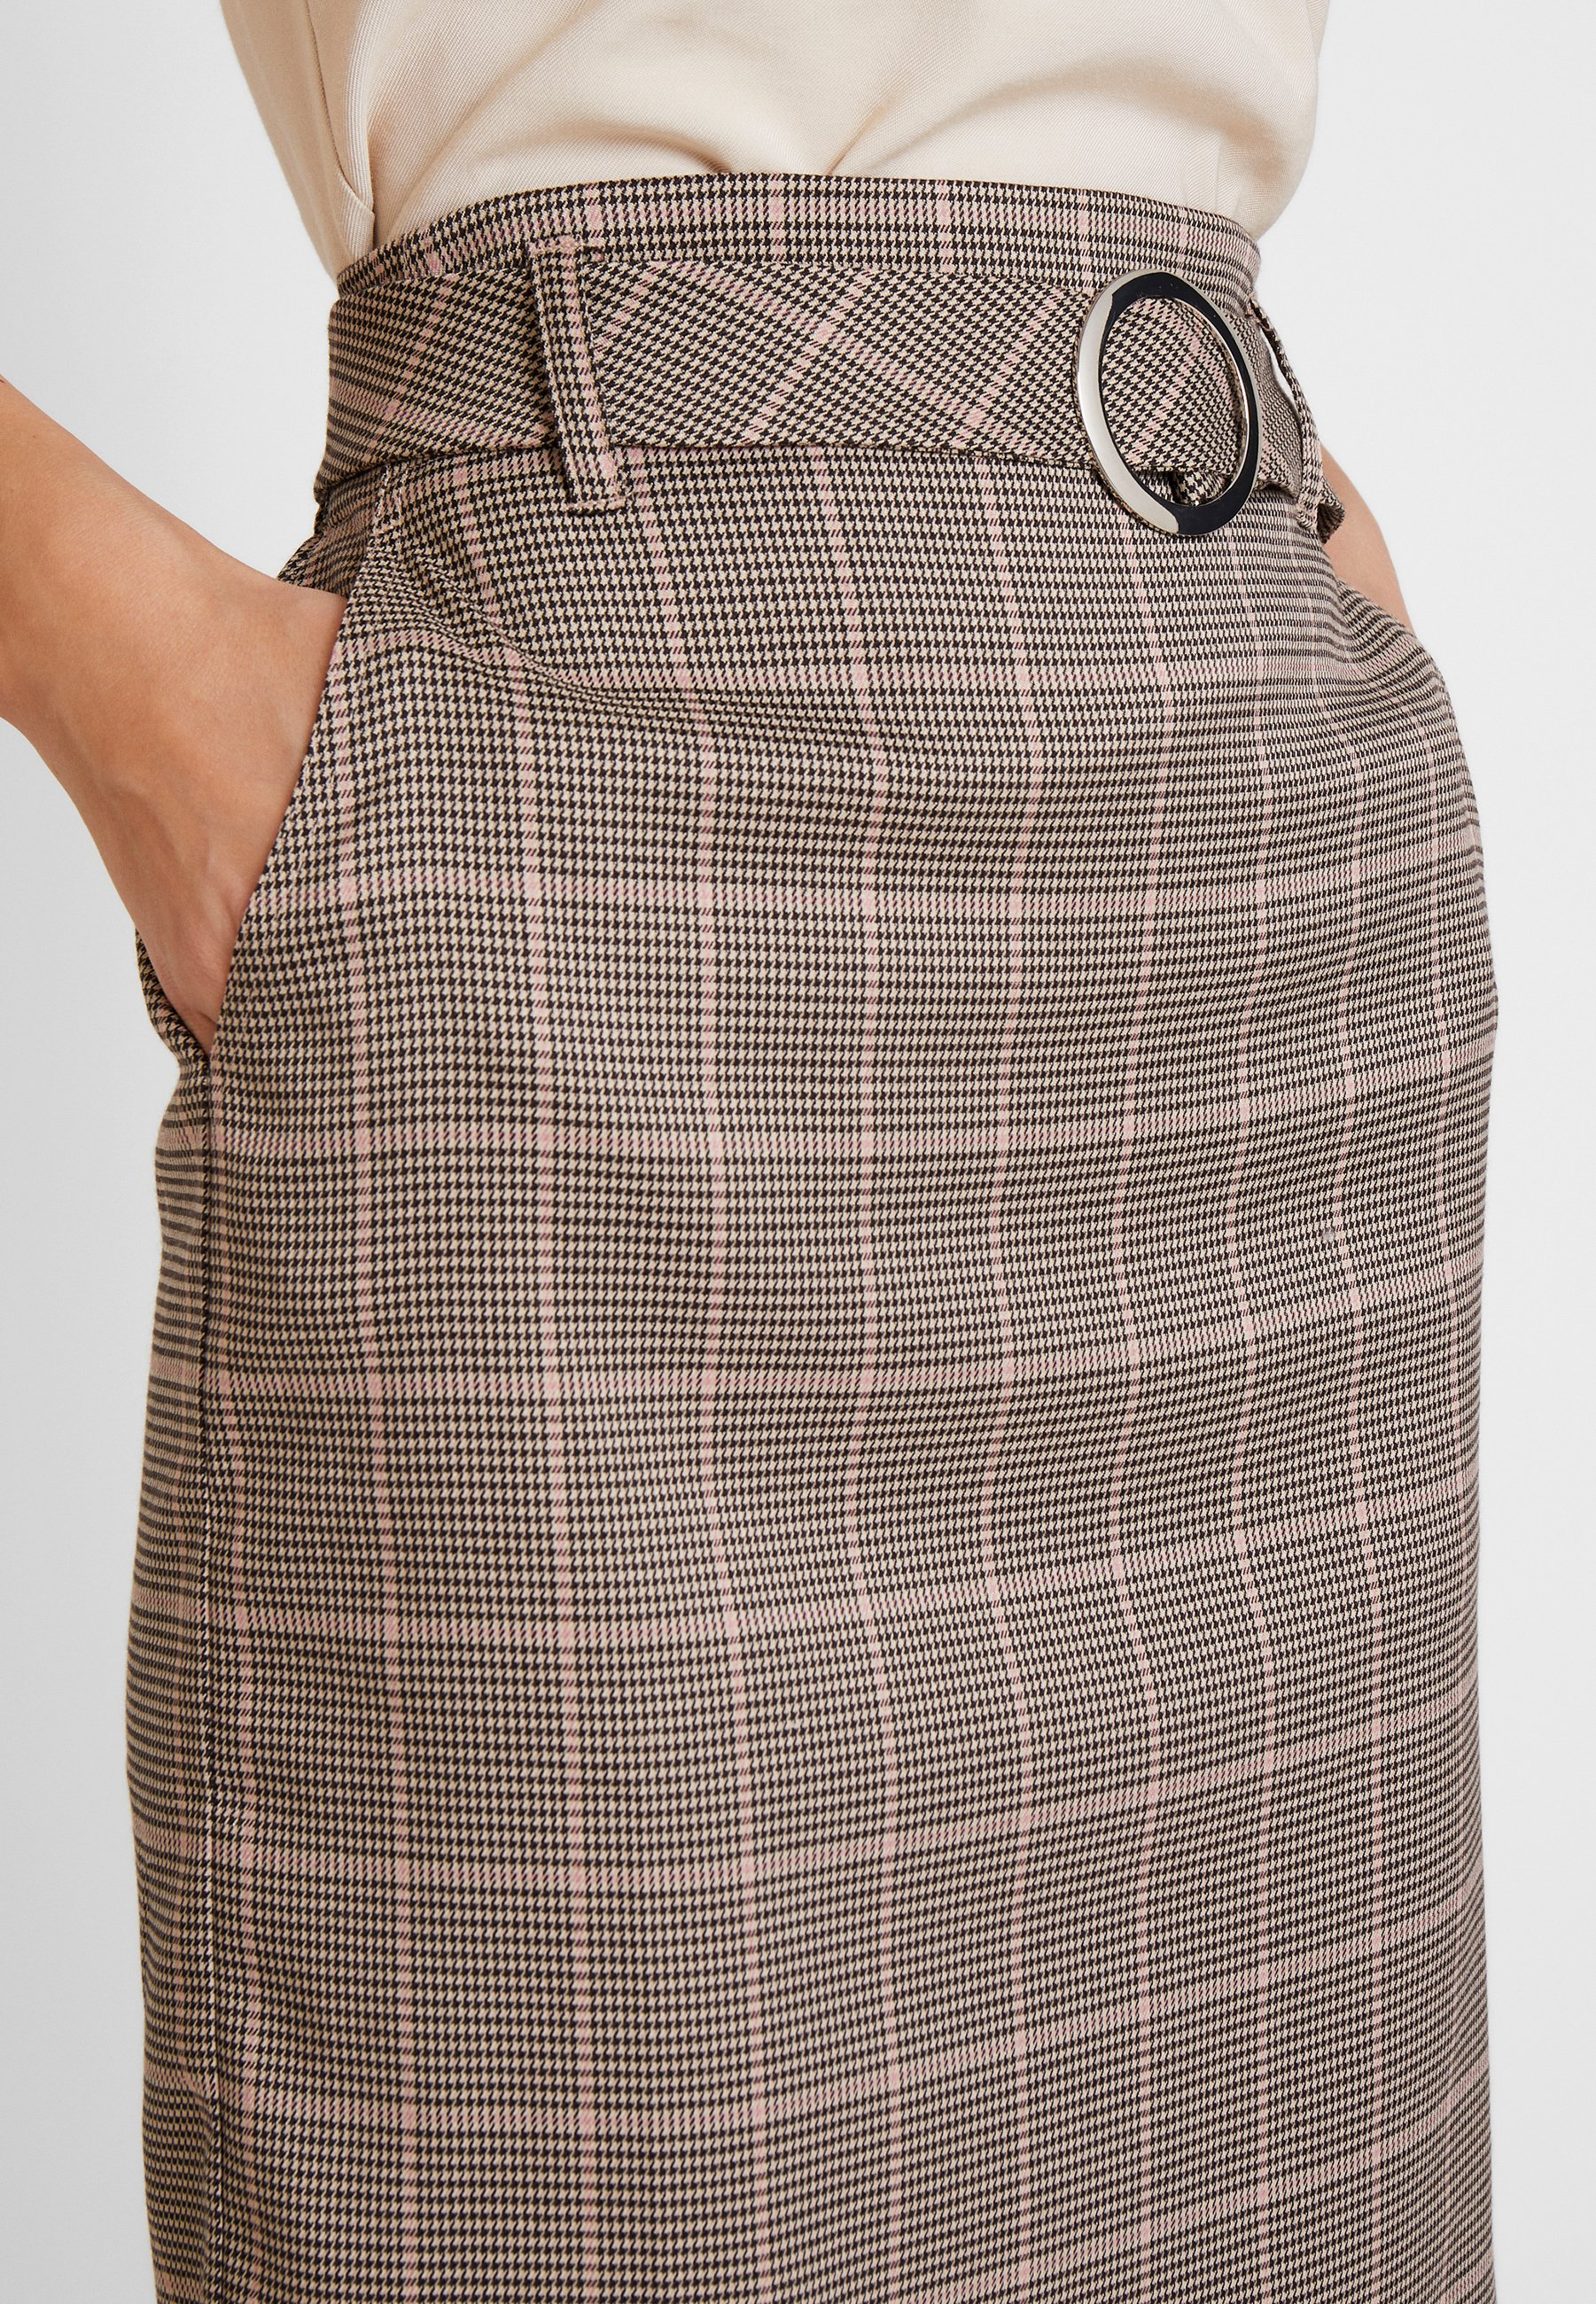 Skirt Apart BeltJupe Taupe Crayon Glencheck With Aq5L34Rj